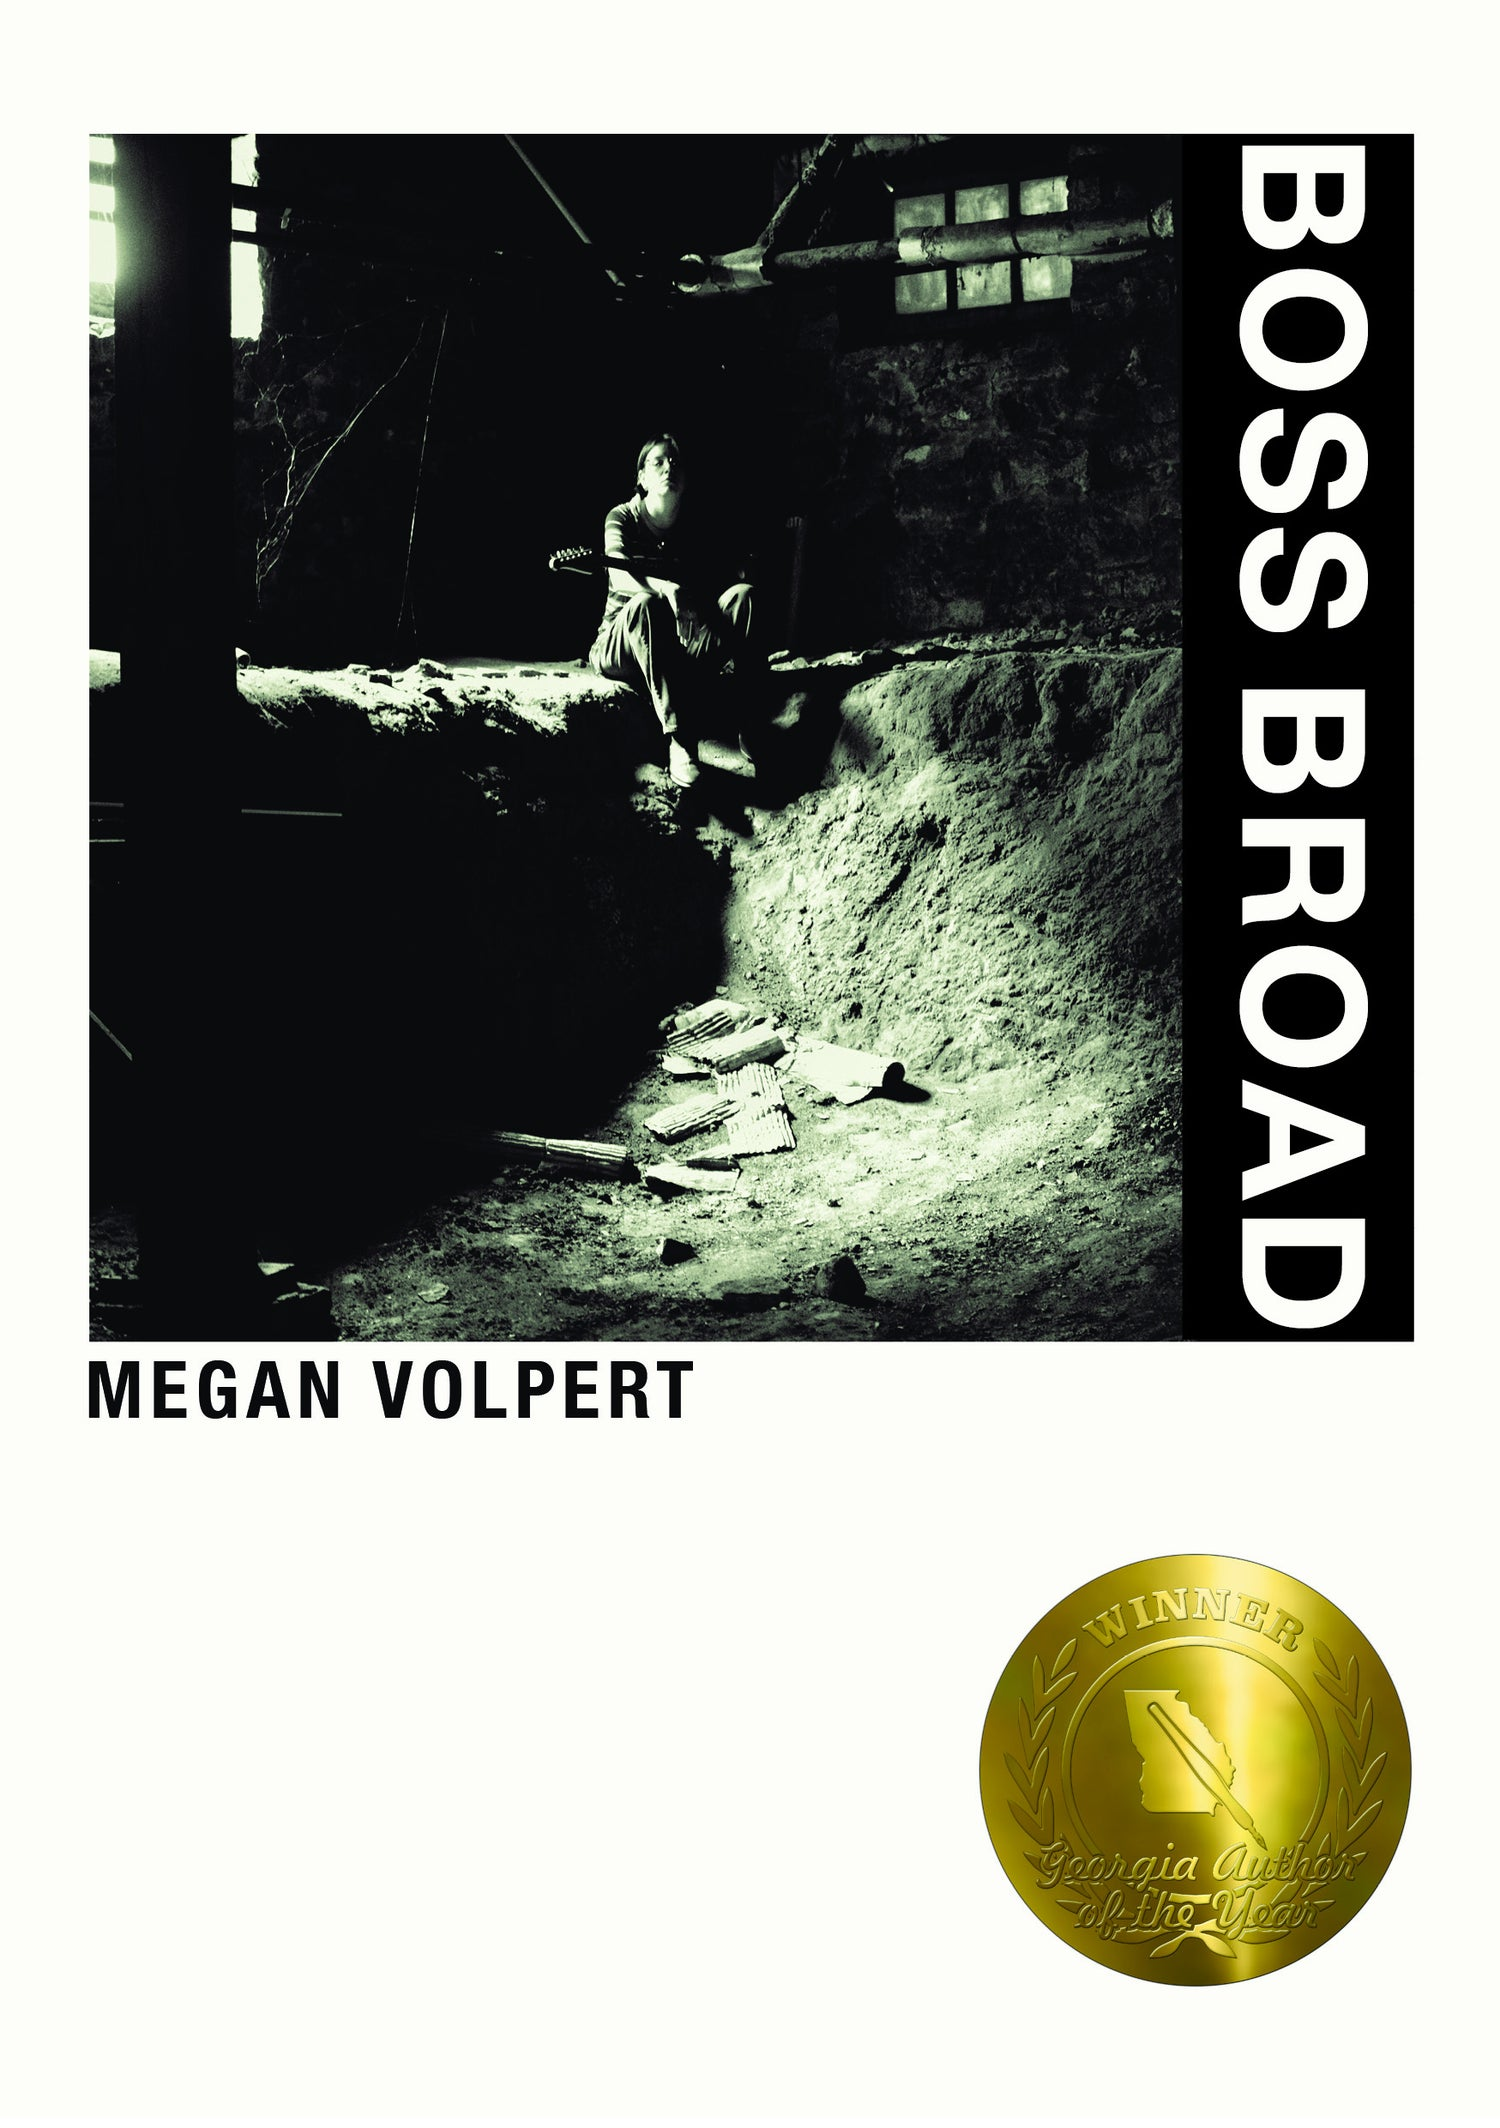 Image of Boss Broad by Megan Volpert, Georgia Author of the Year Award Winner